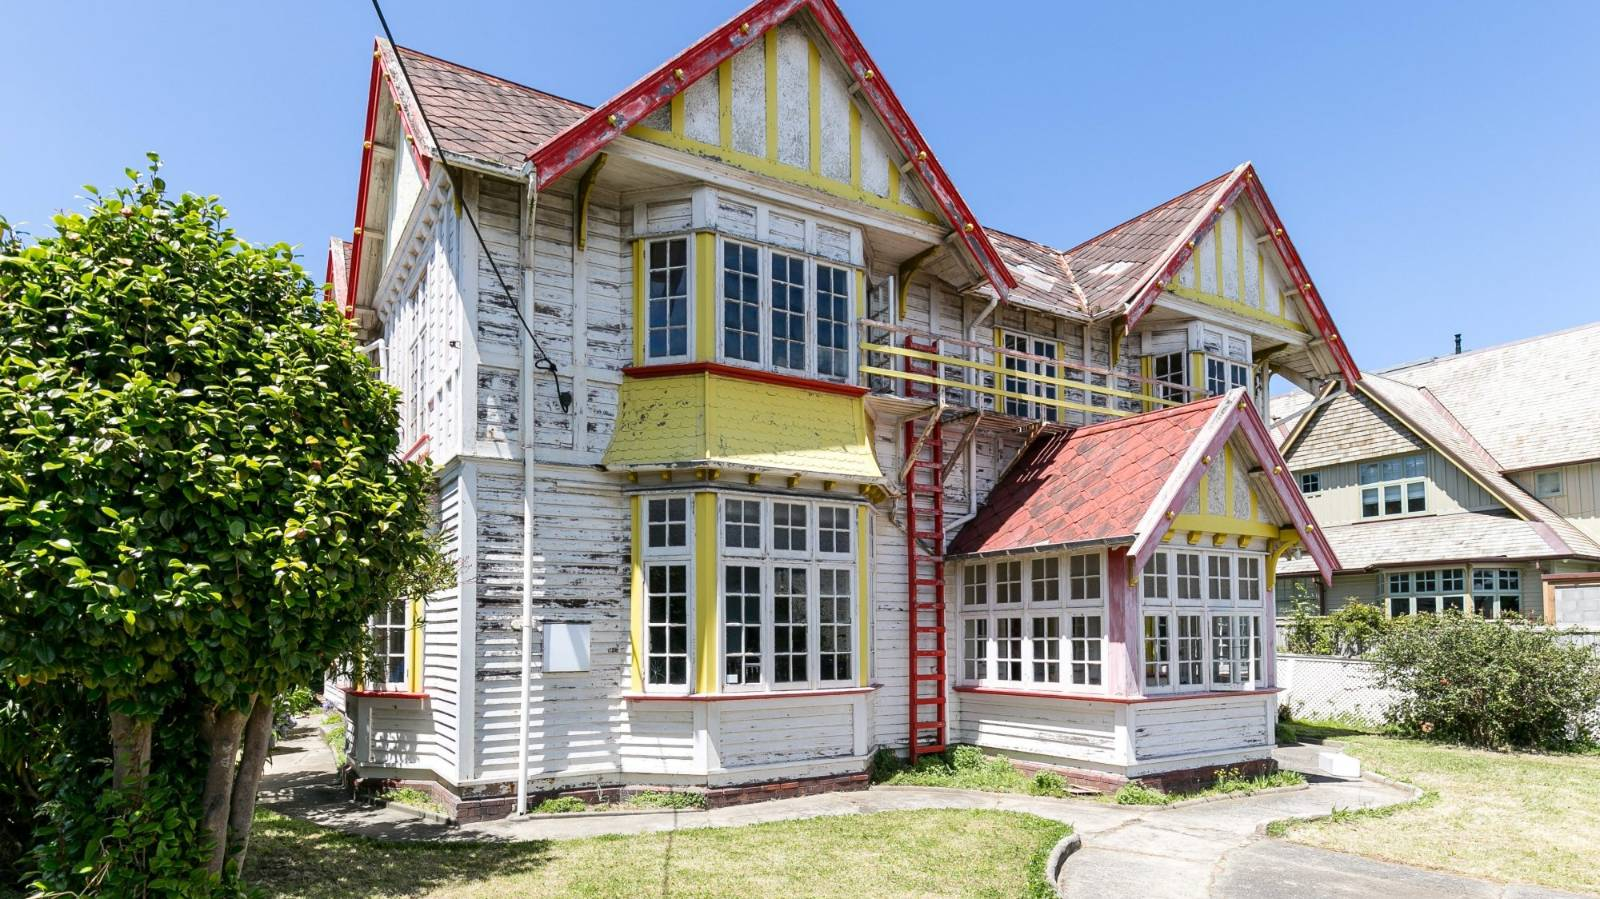 Grand old house for sale in Mount Victoria after years sitting empty